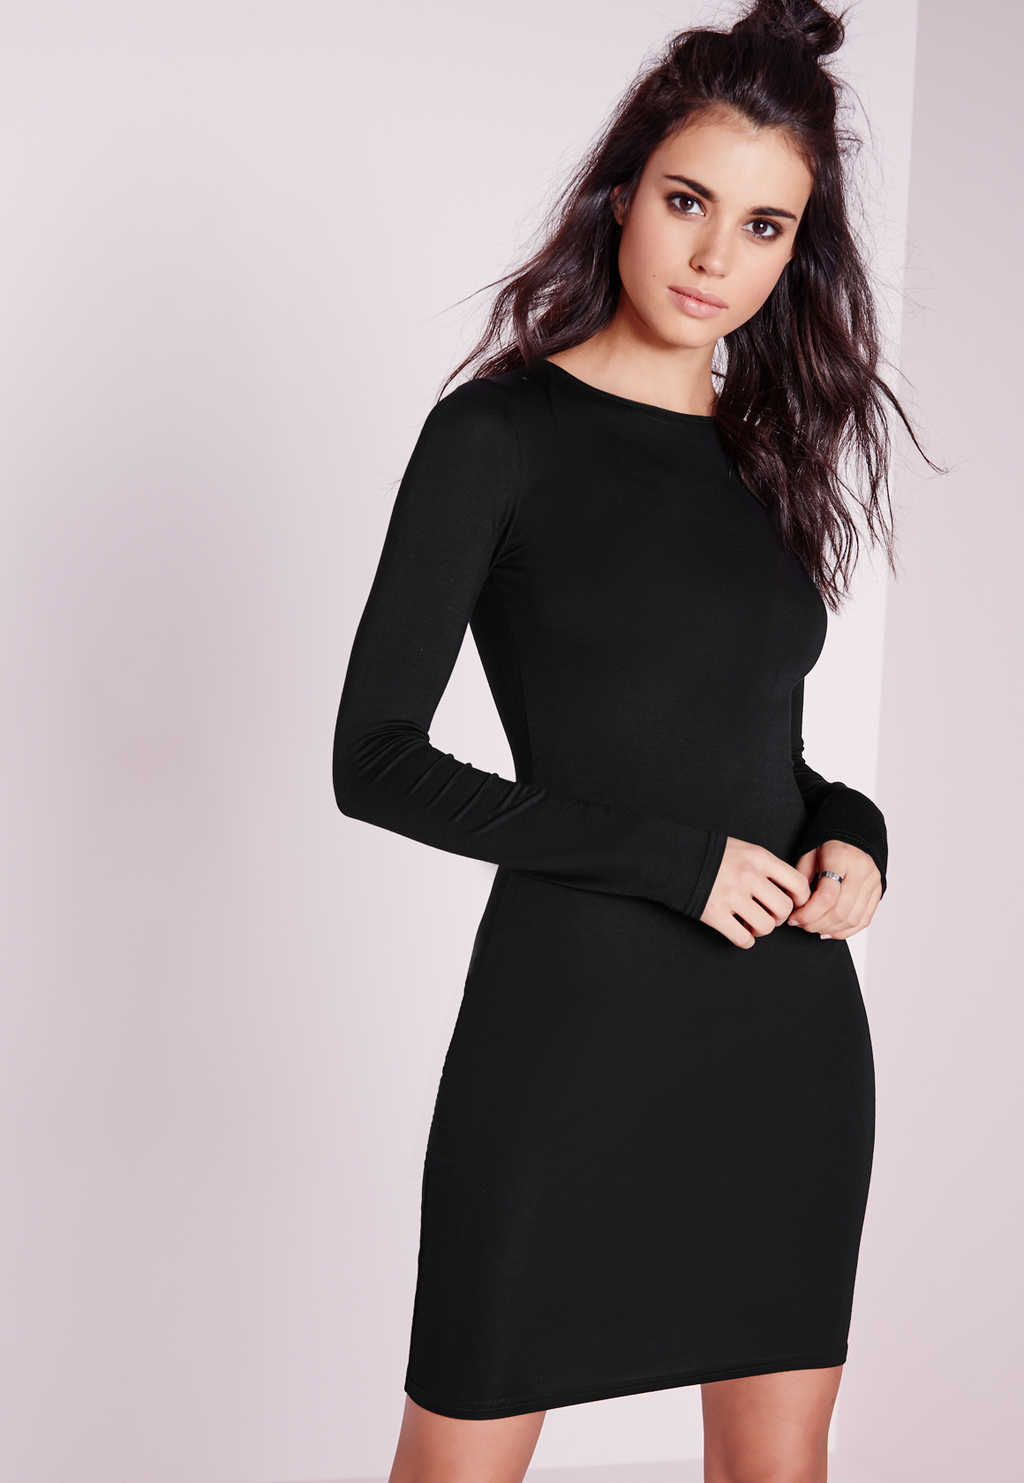 Jersey Bodycon Mini Dress Black, Black - fit: tight; pattern: plain; style: bodycon; predominant colour: black; occasions: evening; length: just above the knee; fibres: viscose/rayon - stretch; neckline: crew; sleeve length: long sleeve; sleeve style: standard; texture group: jersey - clingy; pattern type: fabric; season: s/s 2016